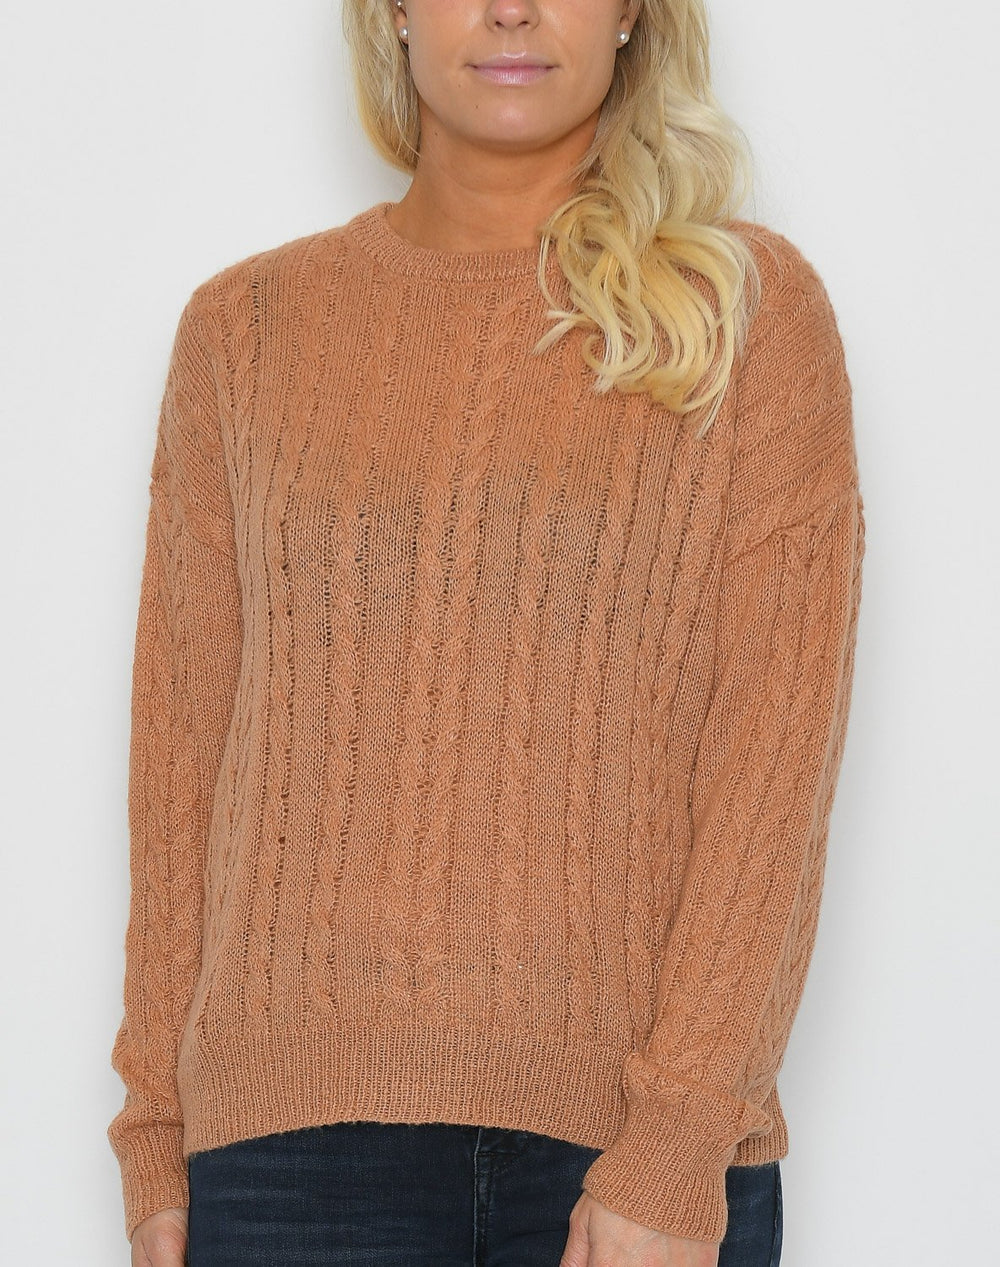 Soft Rebels Calby O-neck knit pullover cork - Online-Mode